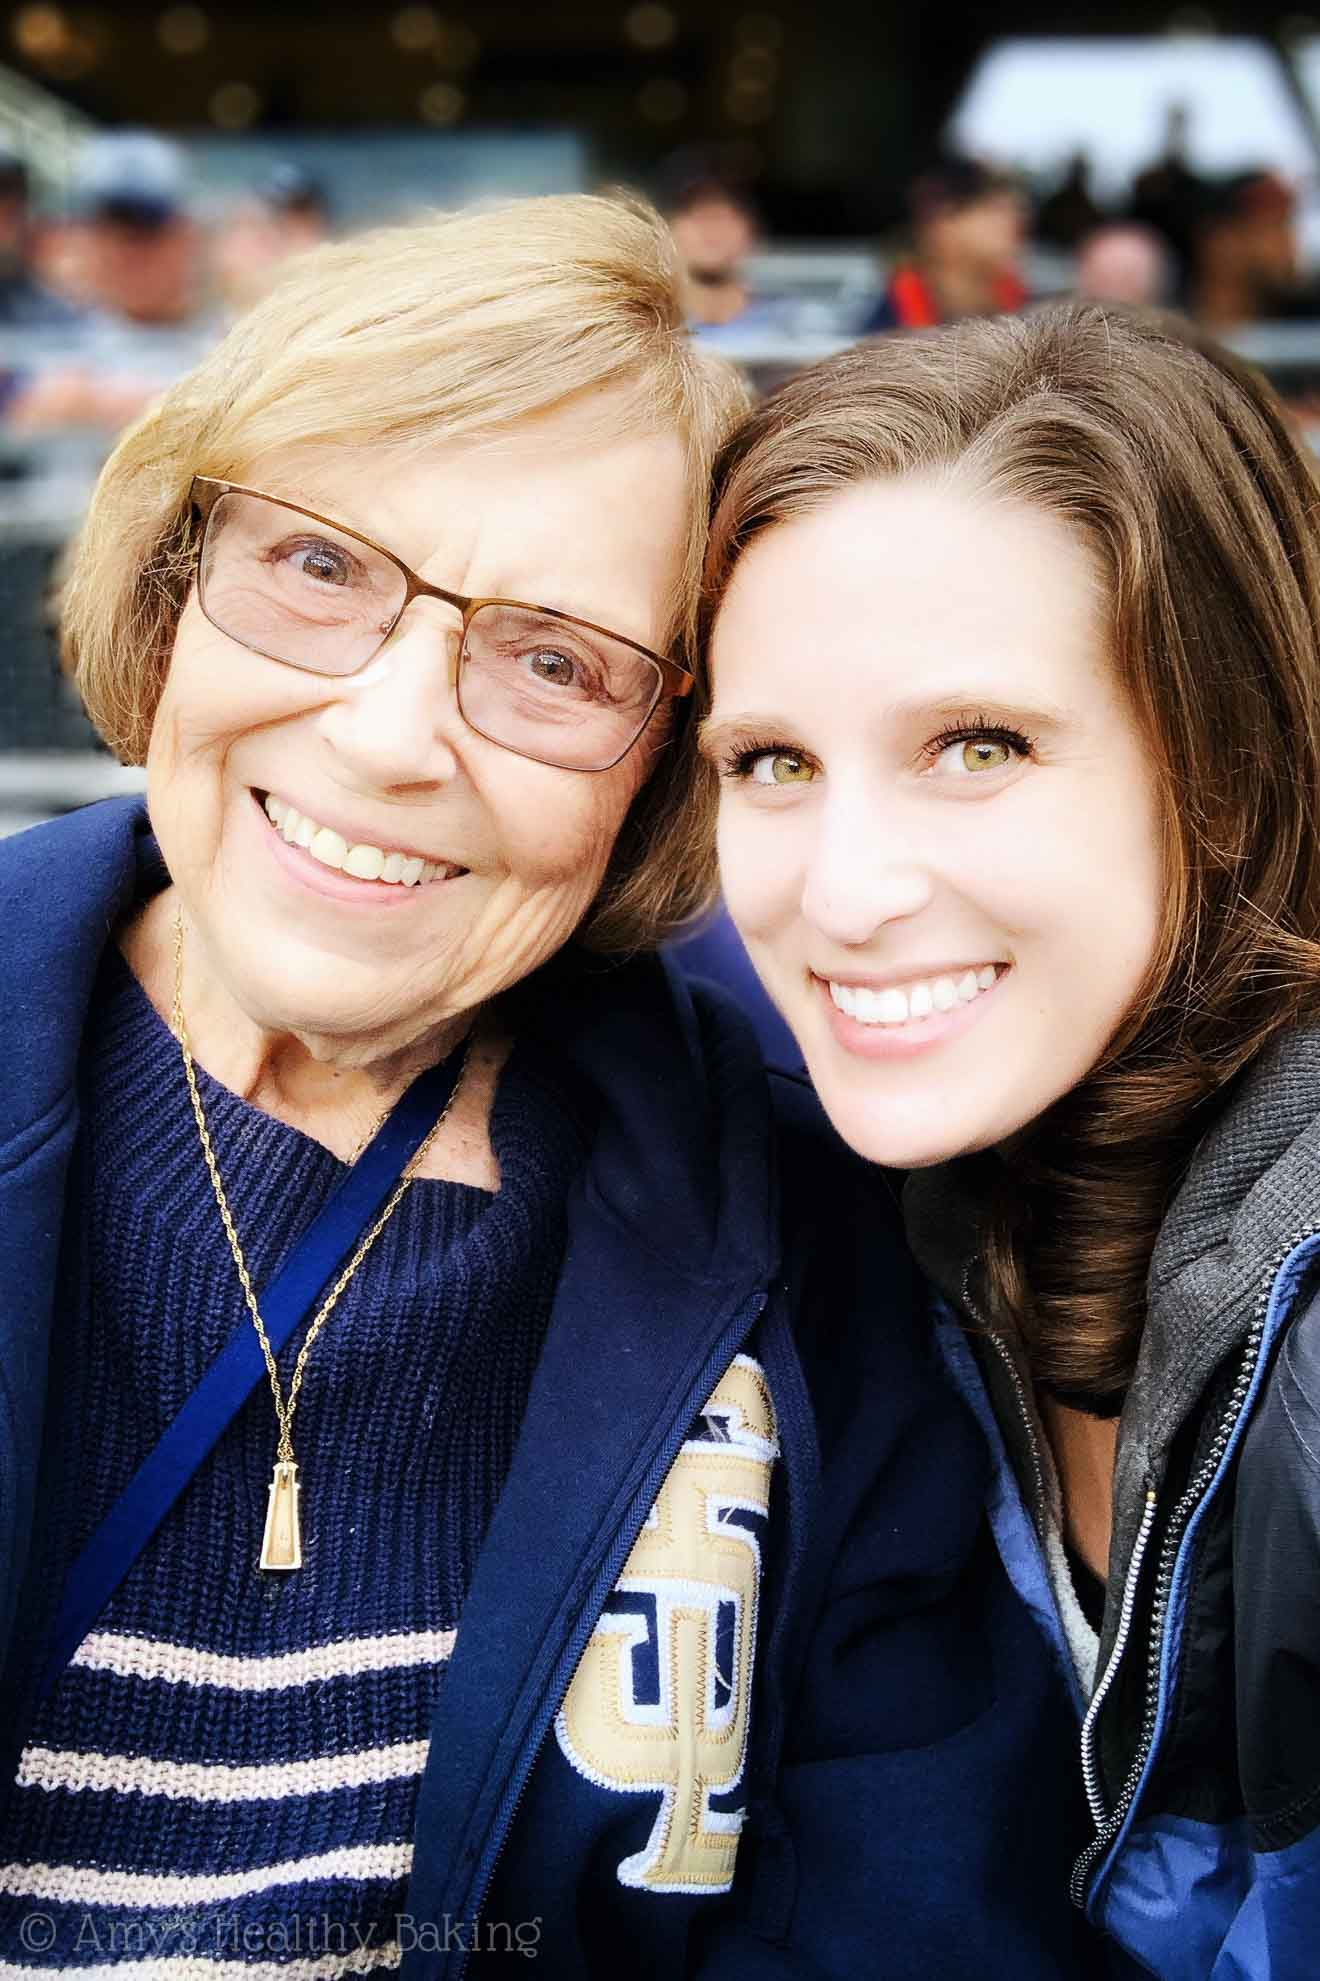 A young adult and her grandmother at a San Diego Padres baseball game